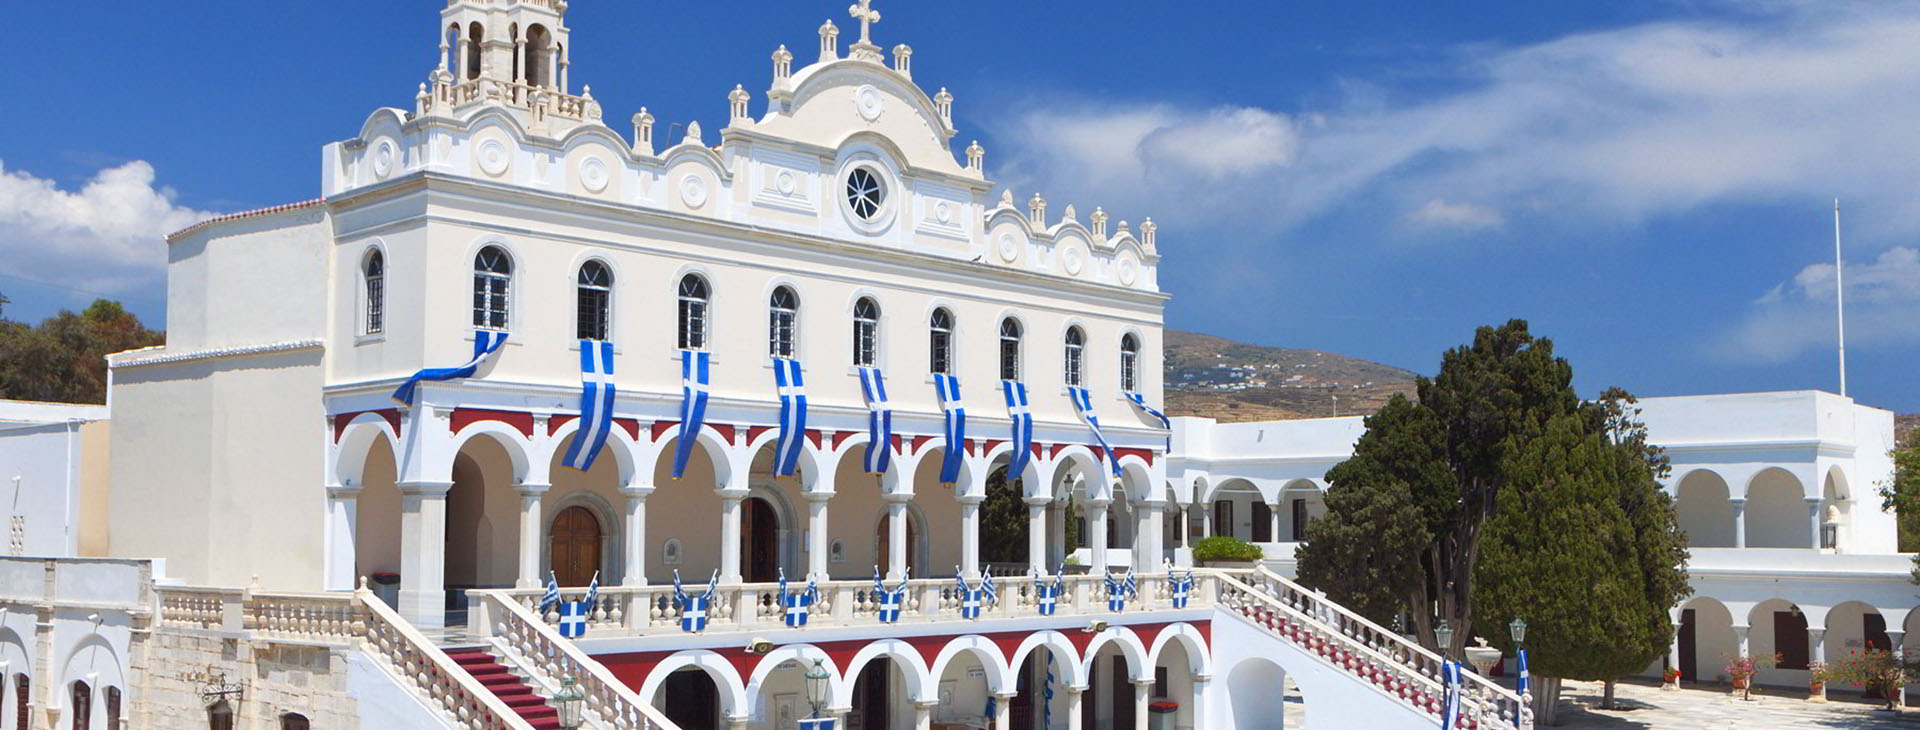 Panagia Evangelistria, landmark of the island, Tinos island